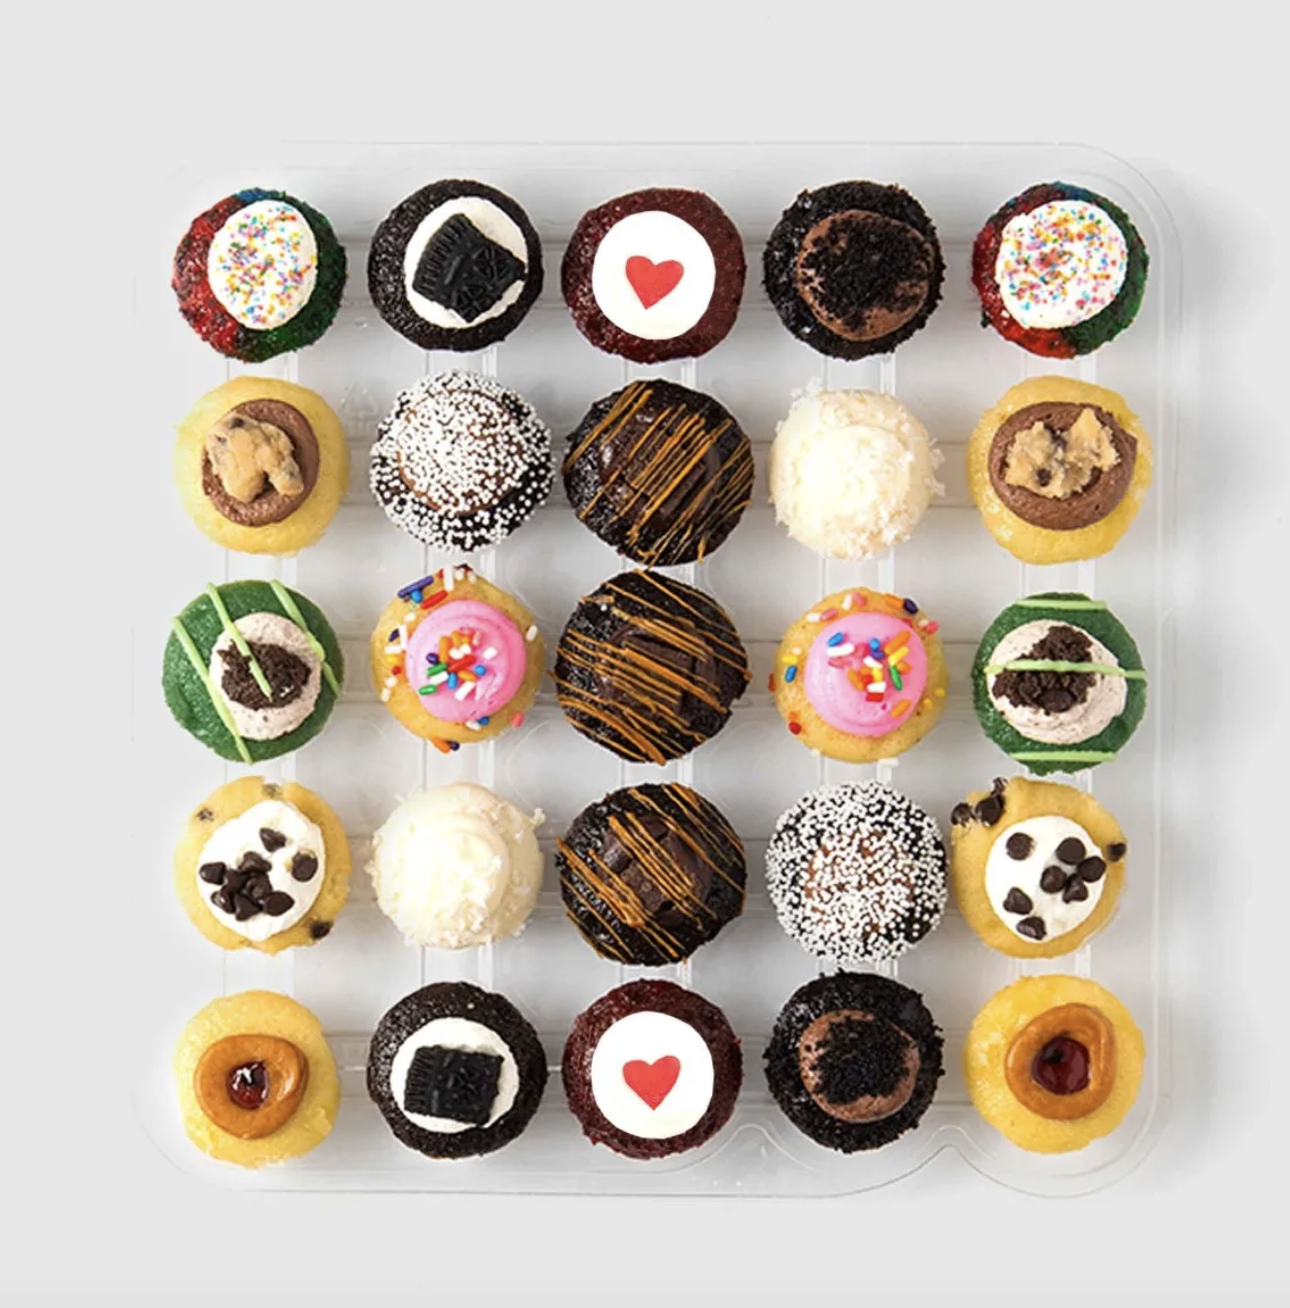 A tray of 25 miniature cupcakes